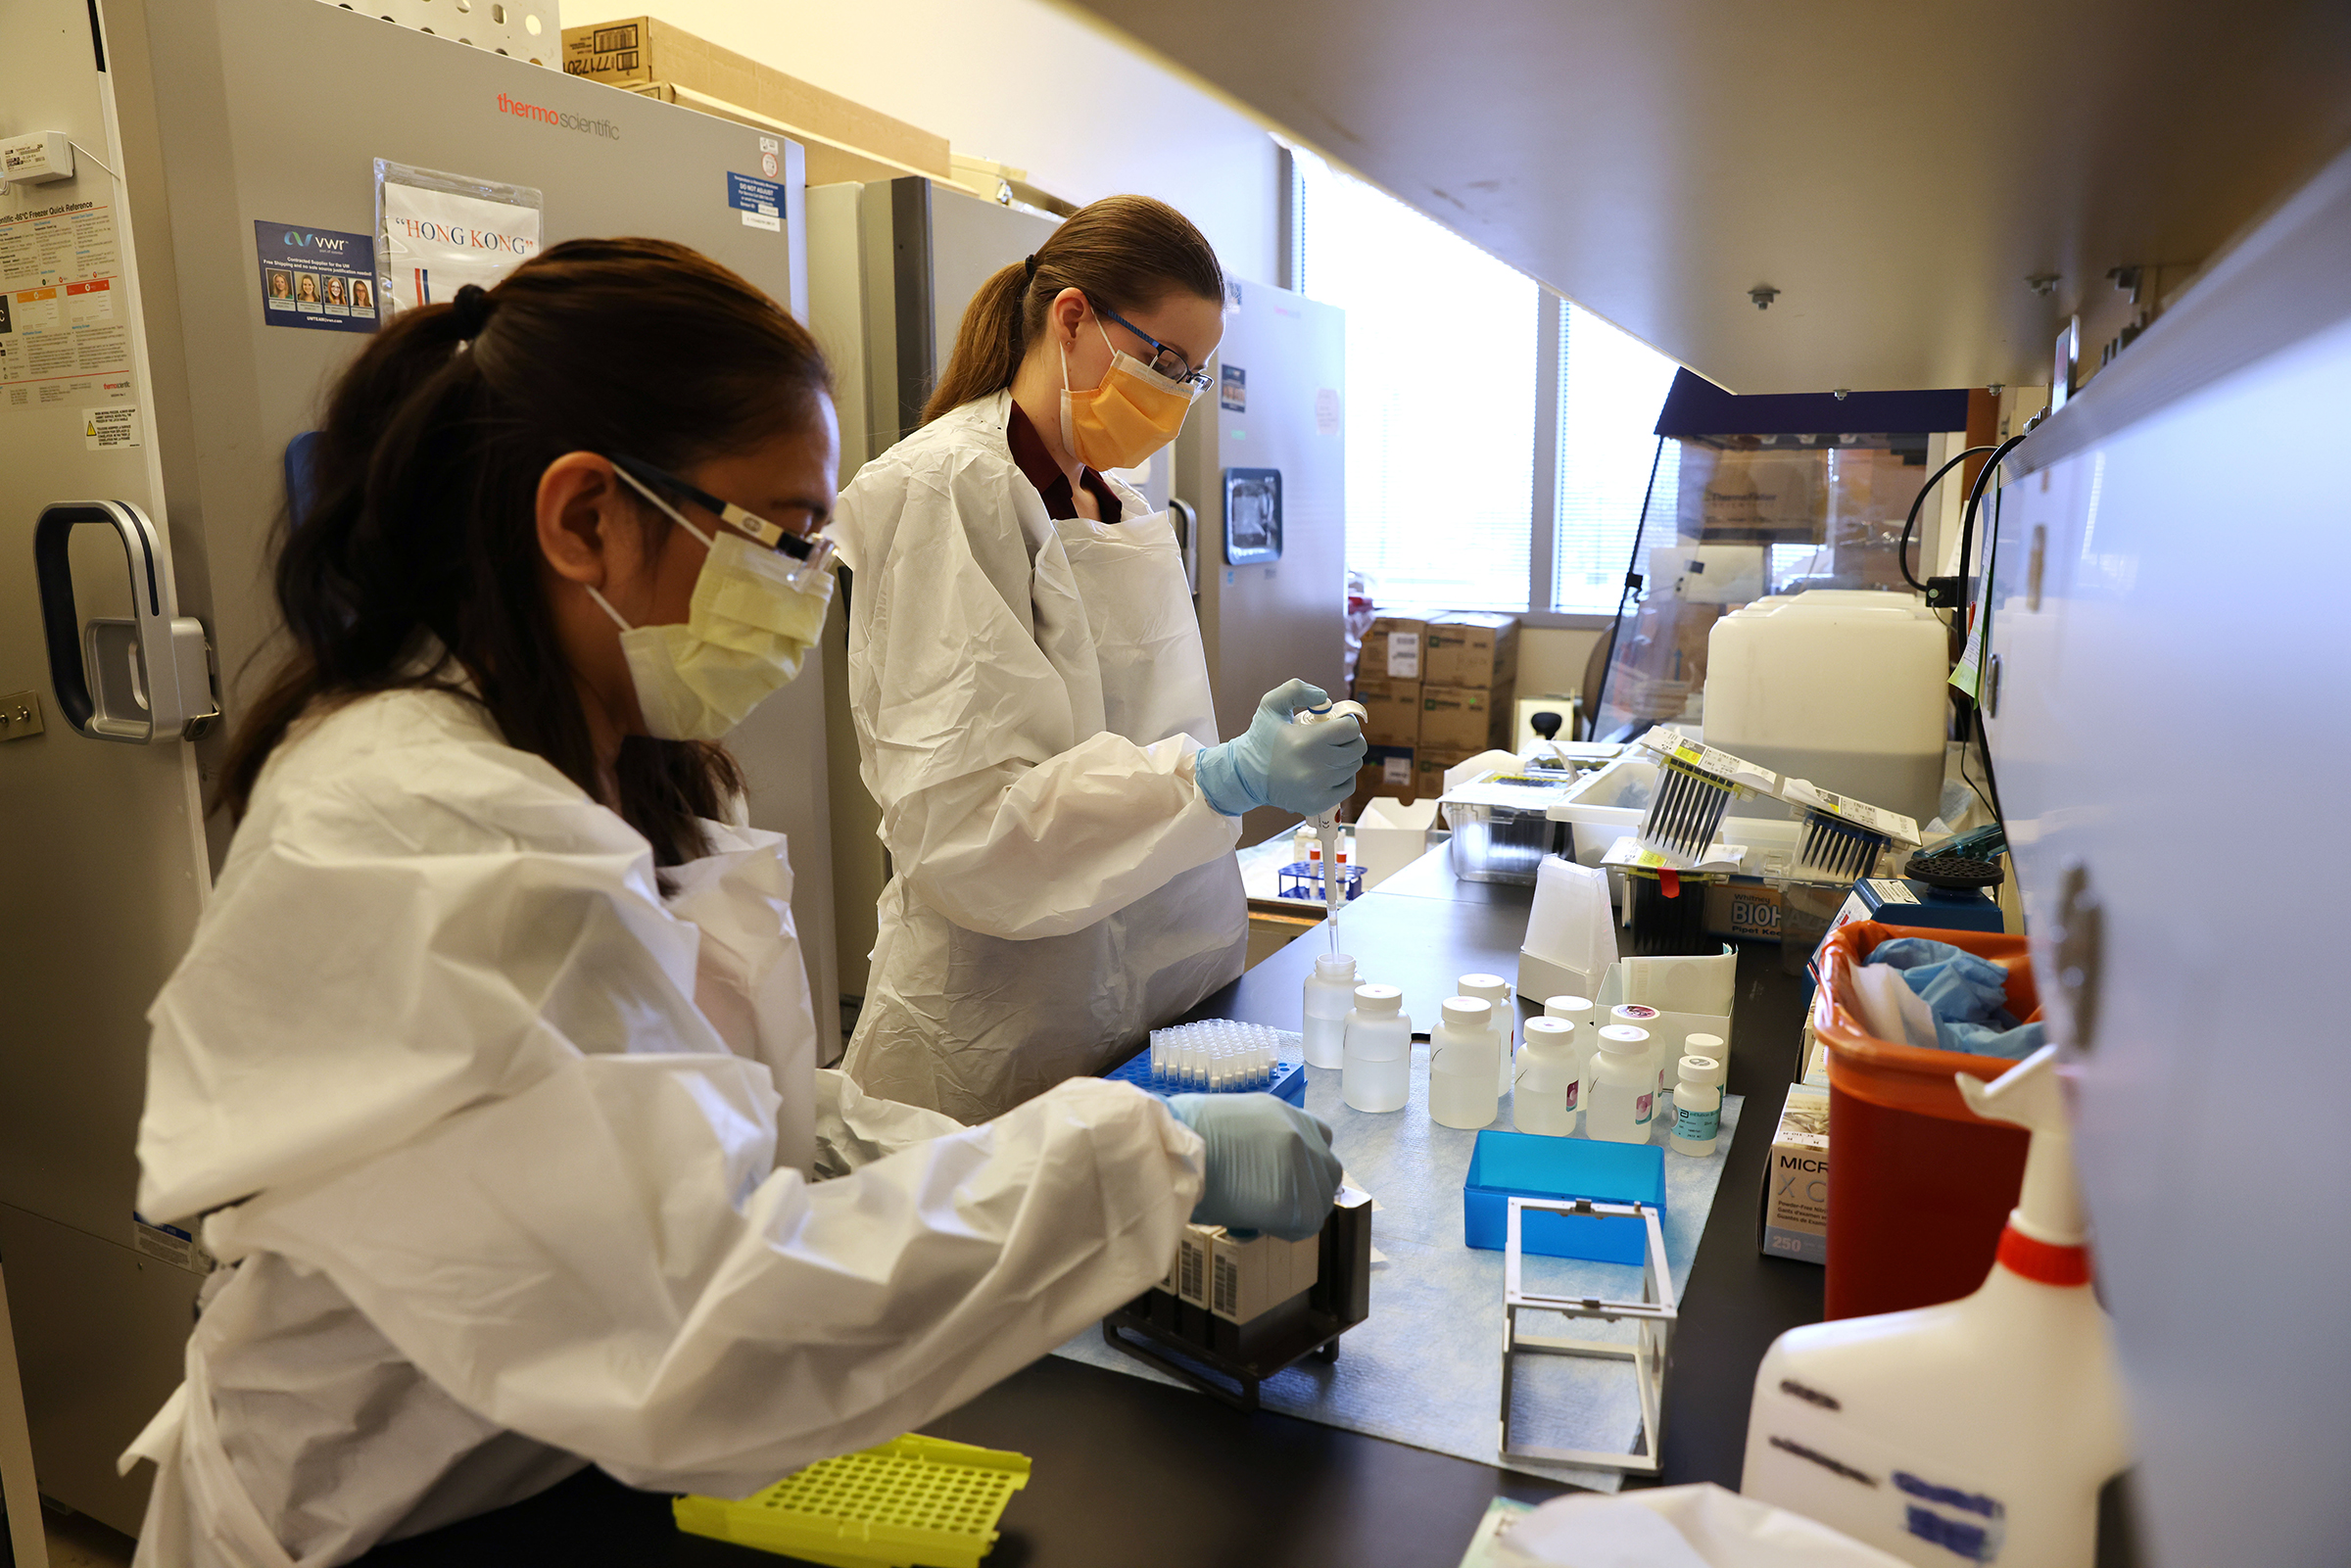 Medical lab scientists work on samples collected in the Novavax phase 3 clinical vaccine trial at Harborview Medical Center in Seattle, Washington, on February 12.